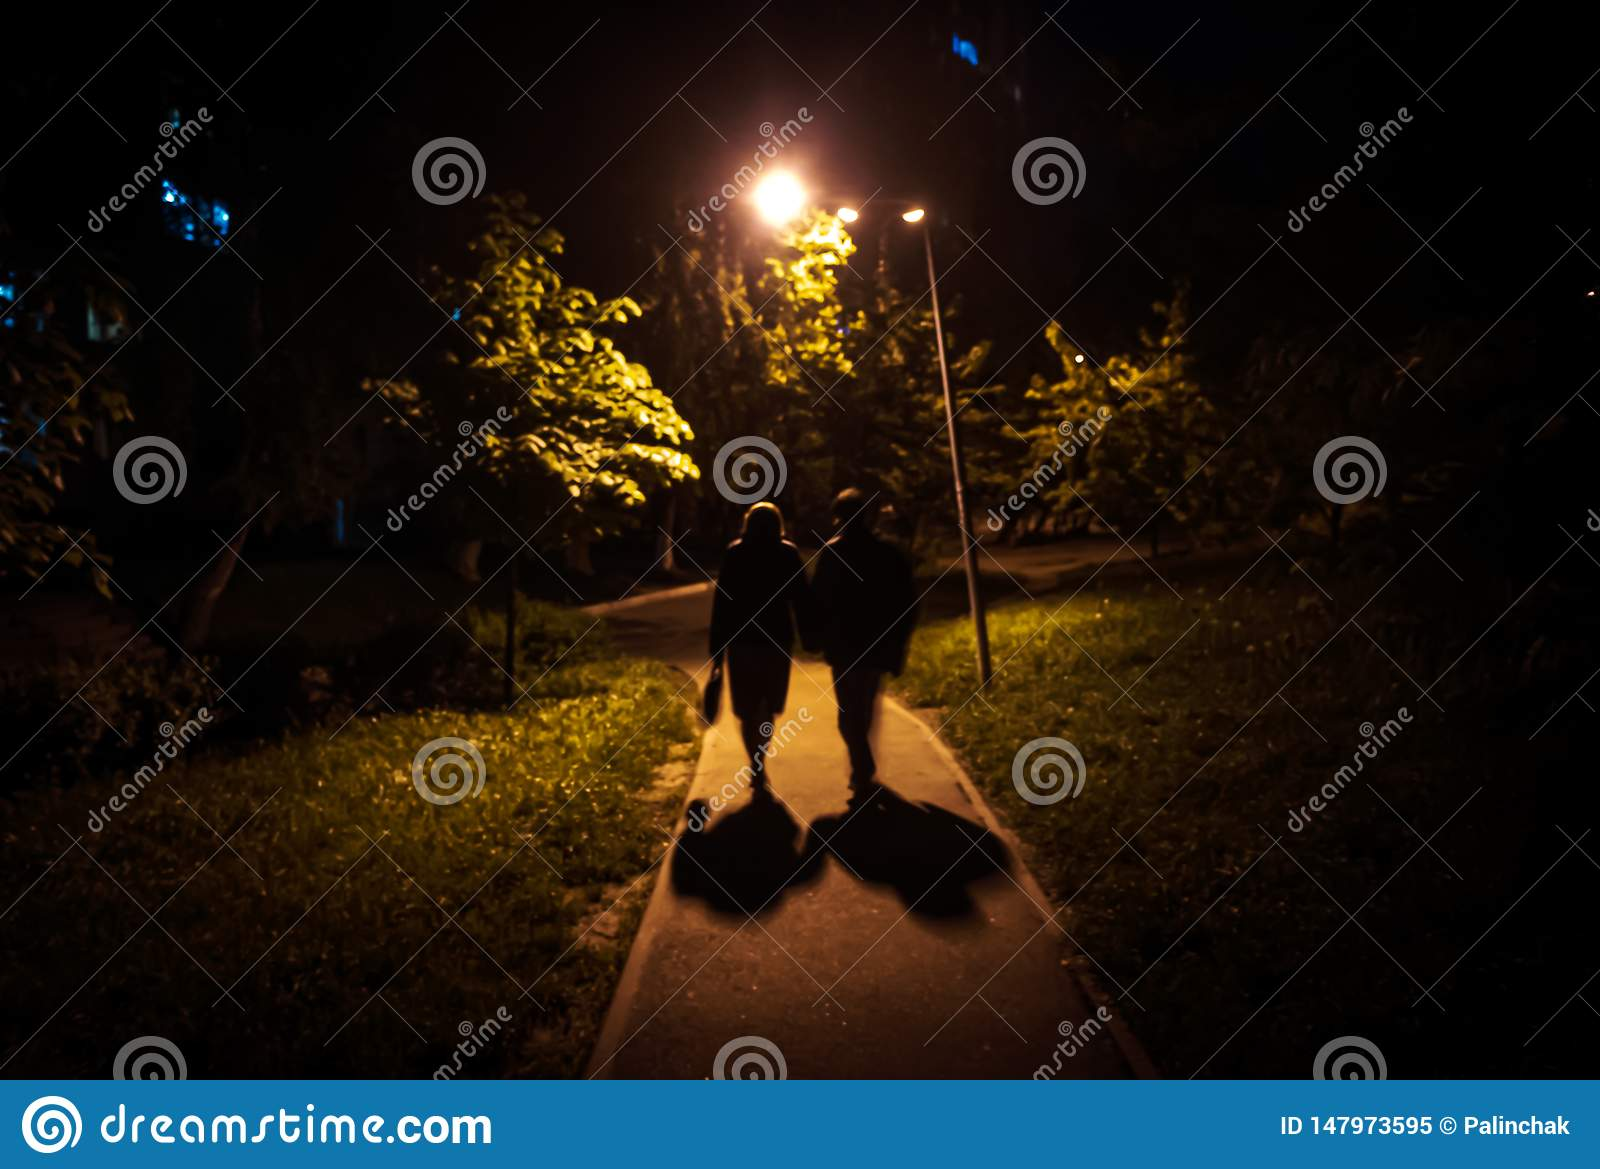 Man And Woman Are Walking Along The Road At Night Stock Image - Image of  nightlife, happy: 147973595